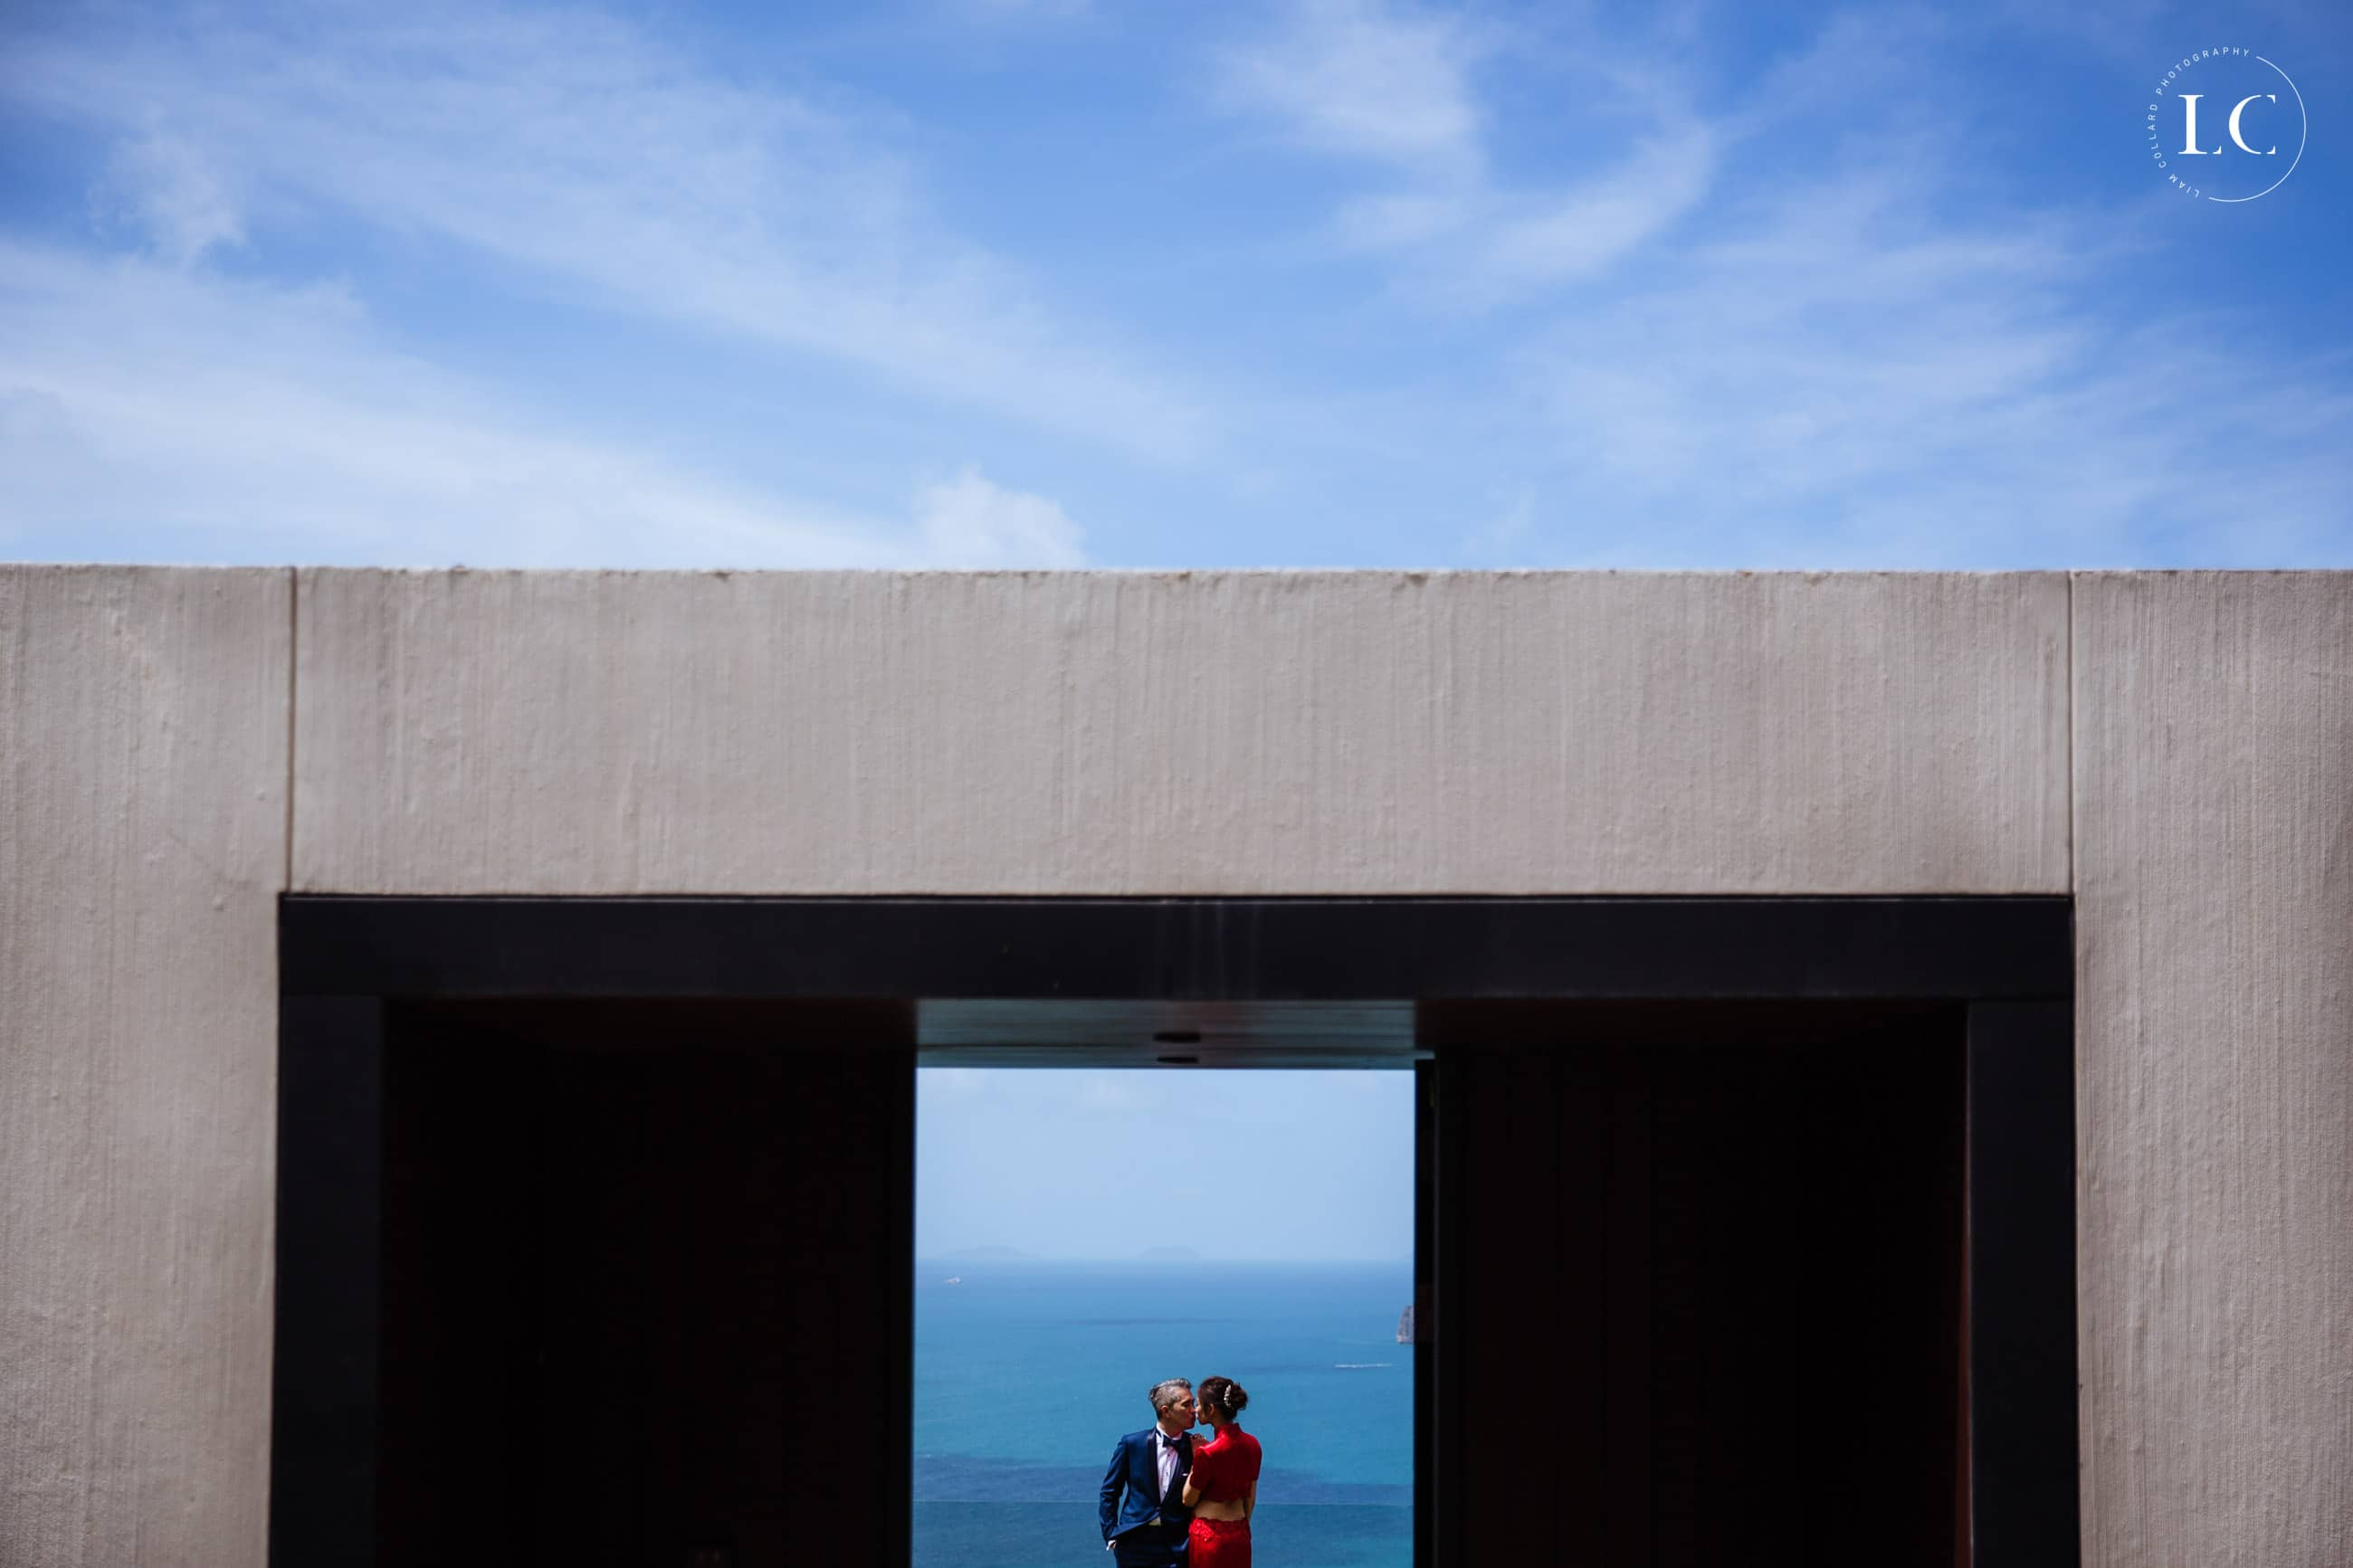 Couple embracing beside ocean and house